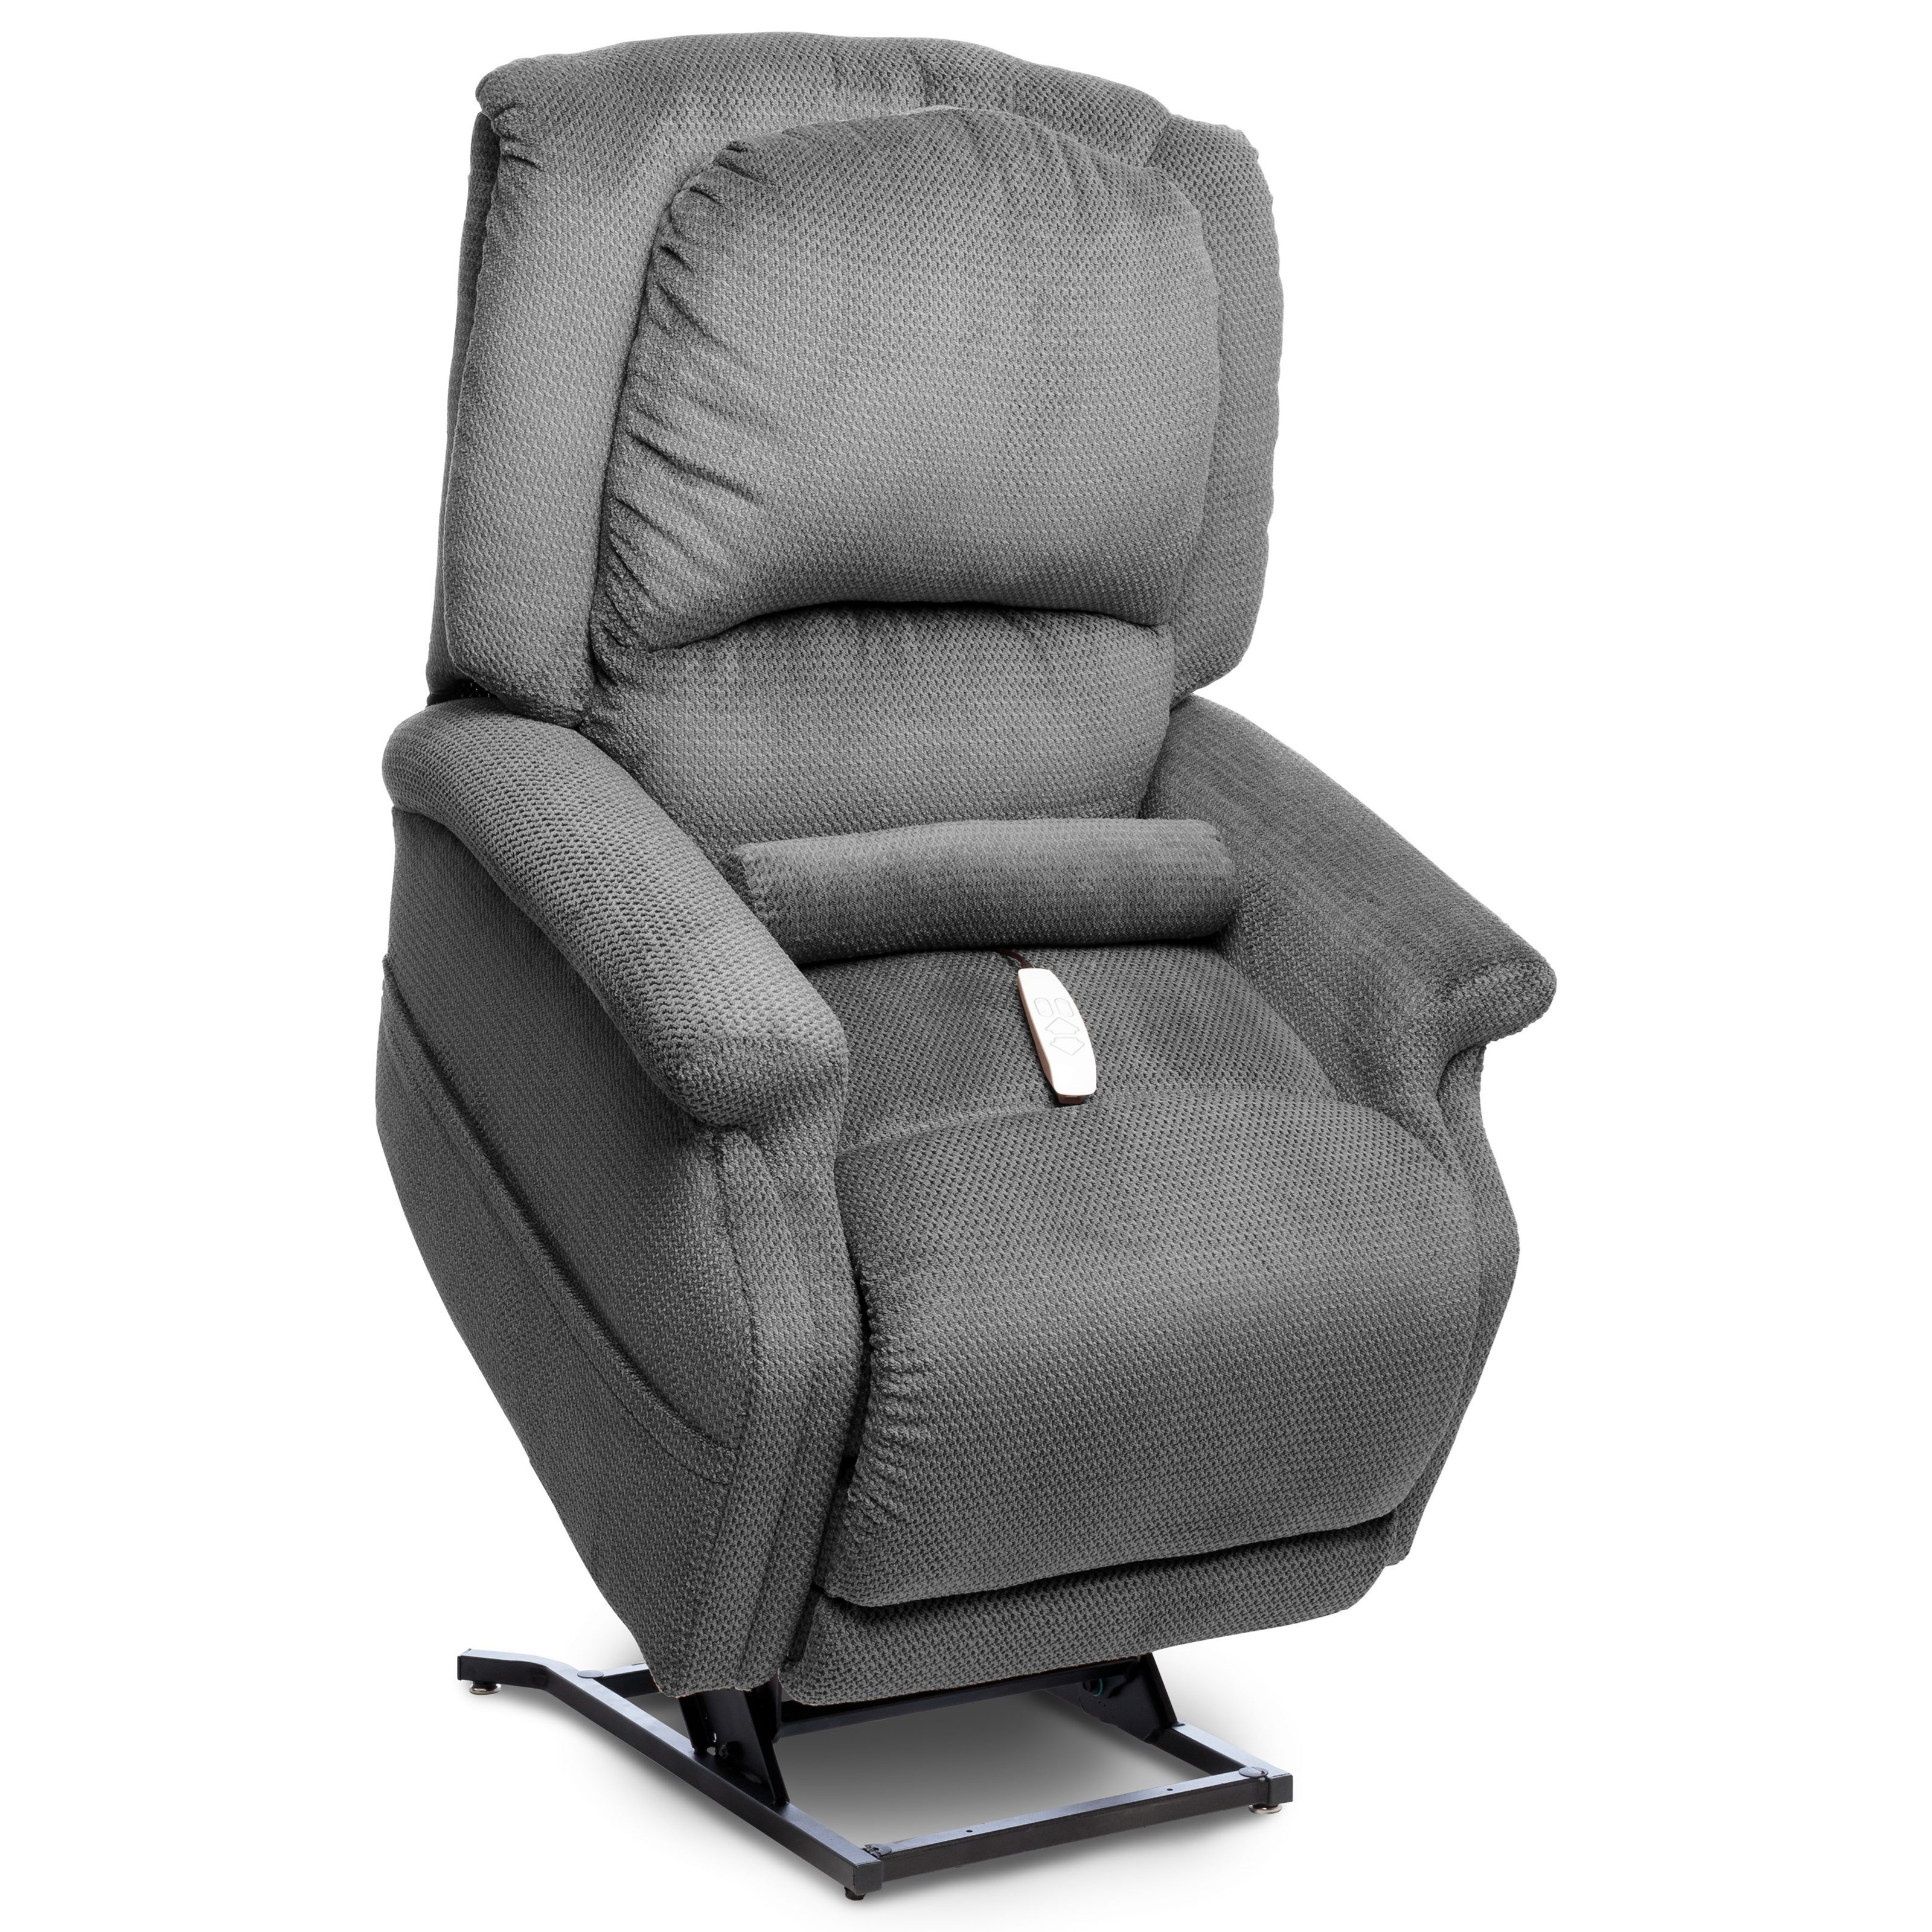 Zero Gravity Lift Chair Windermere Motion Lift Chairs Stardust Zero Gravity Chaise